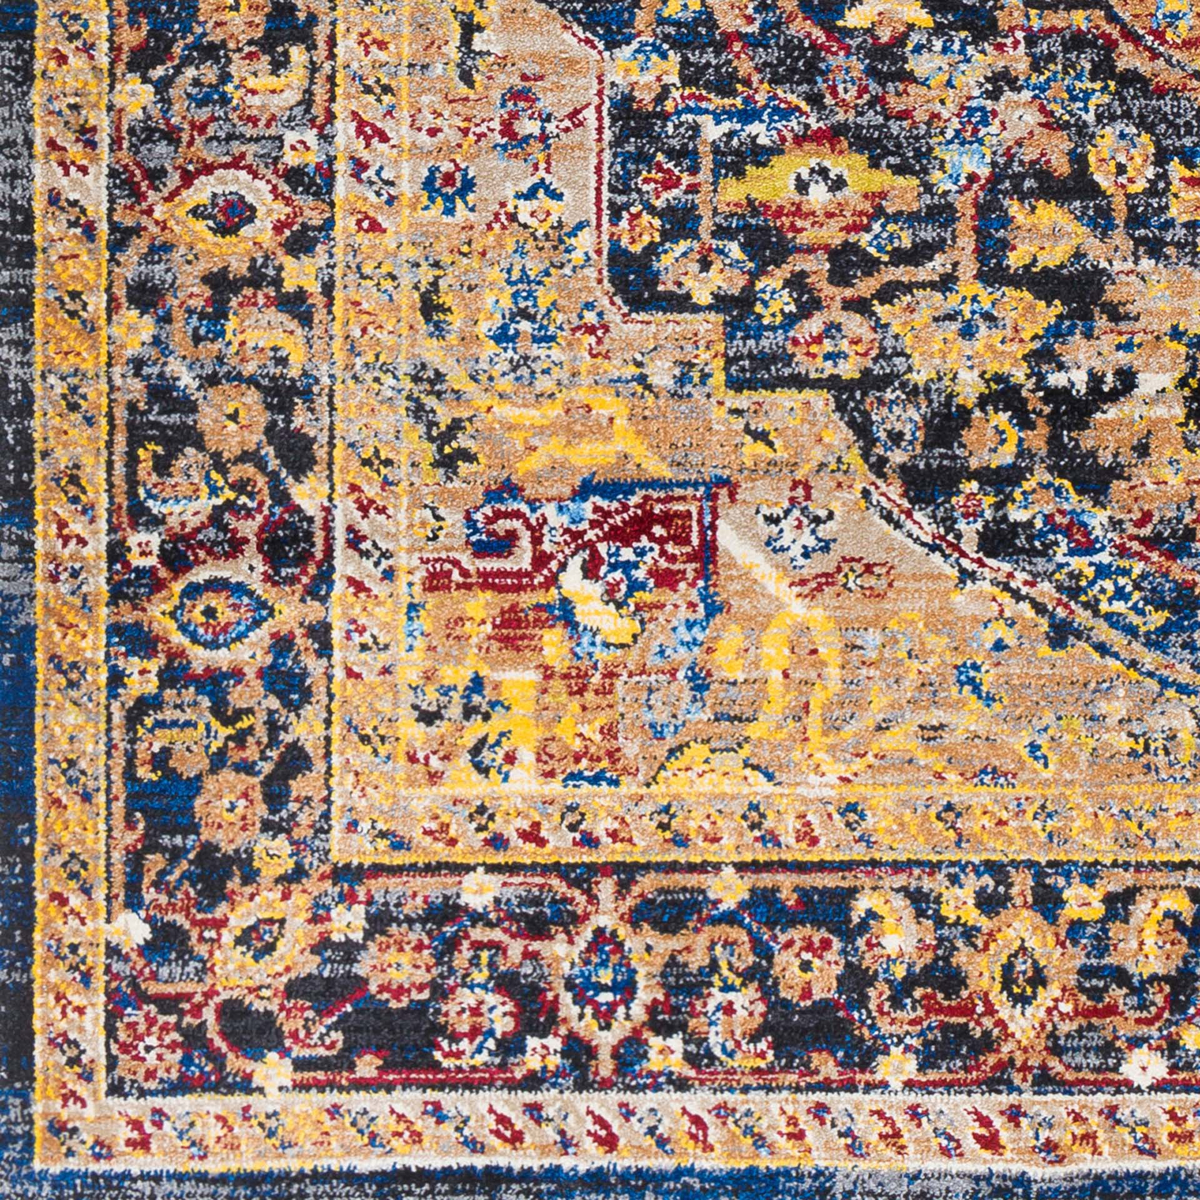 Unique Turkish rug with distinct yellow, blue and red pattern from the Surya Alchemy Collection - Pattern Detail